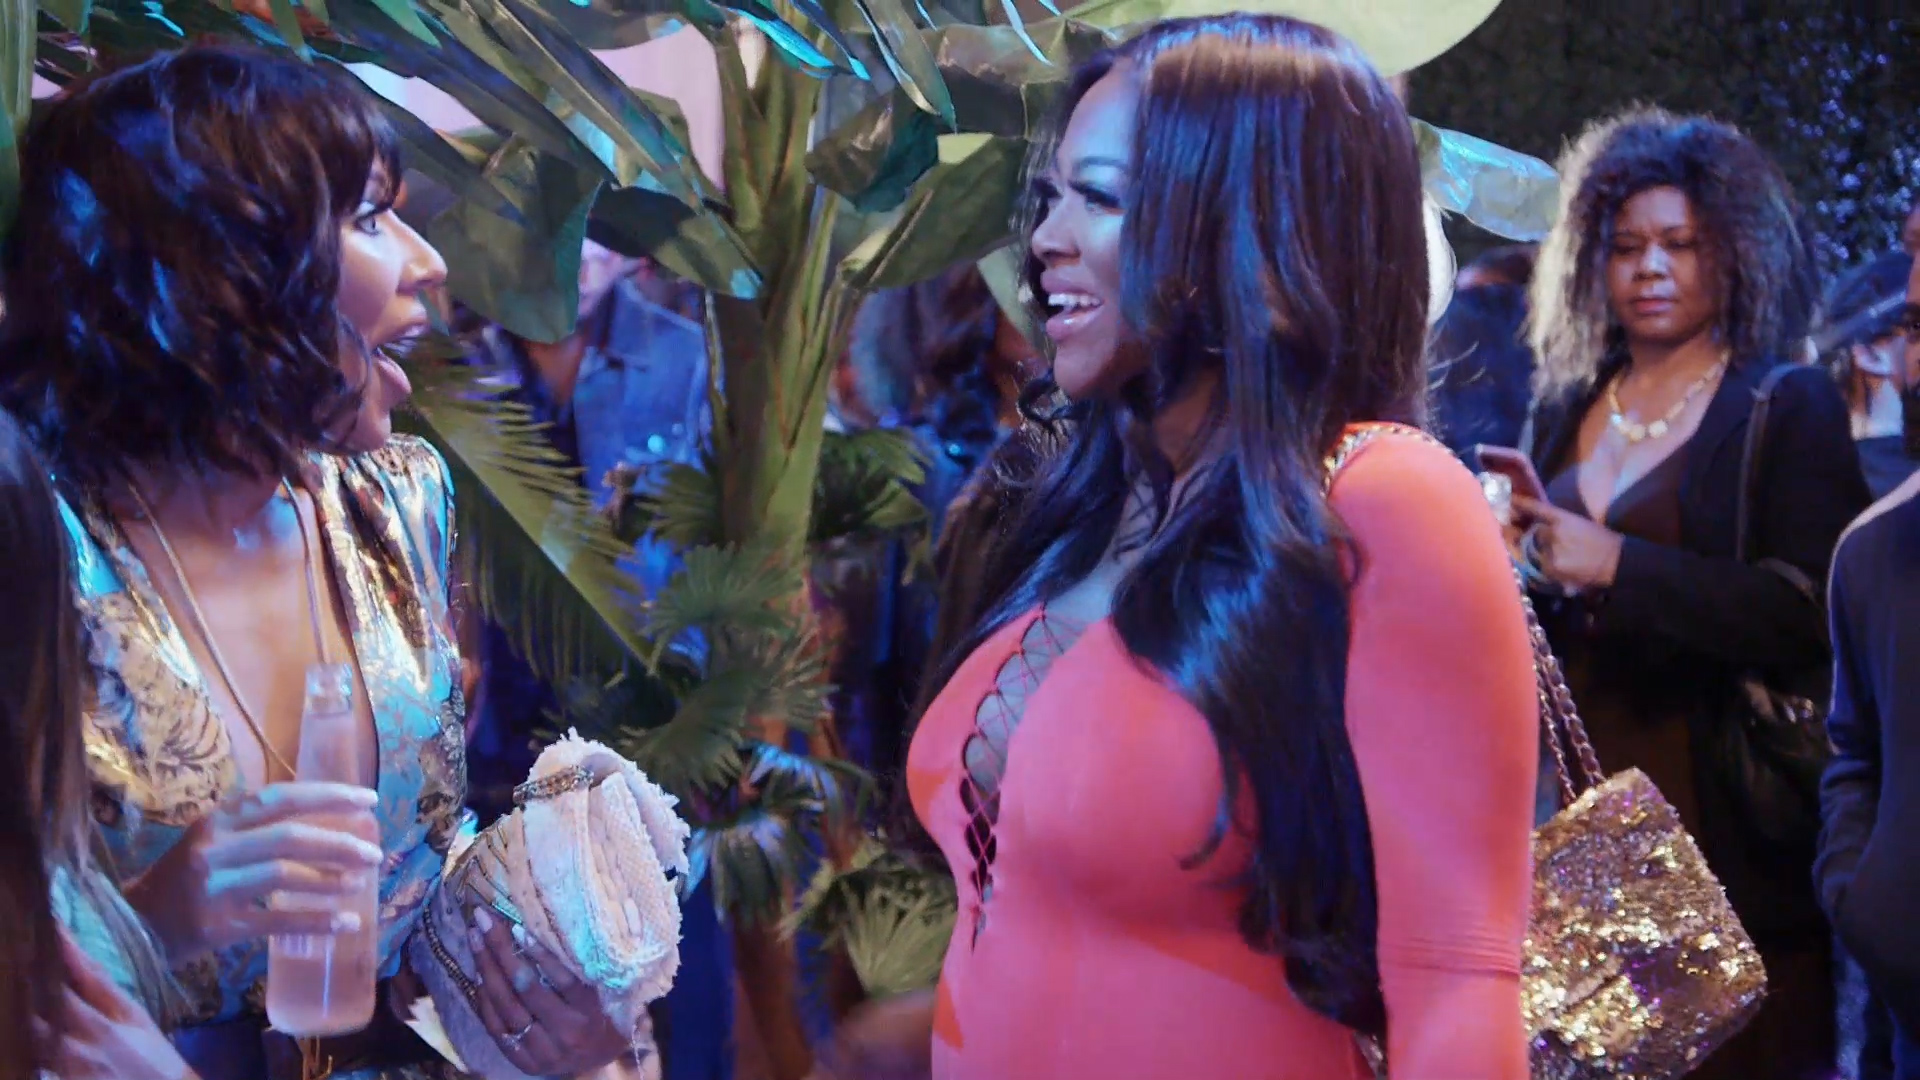 Kenya Moore's Fans Are In Awe After She Appeared On RHOA - People Say She Shades 'Like No Other'